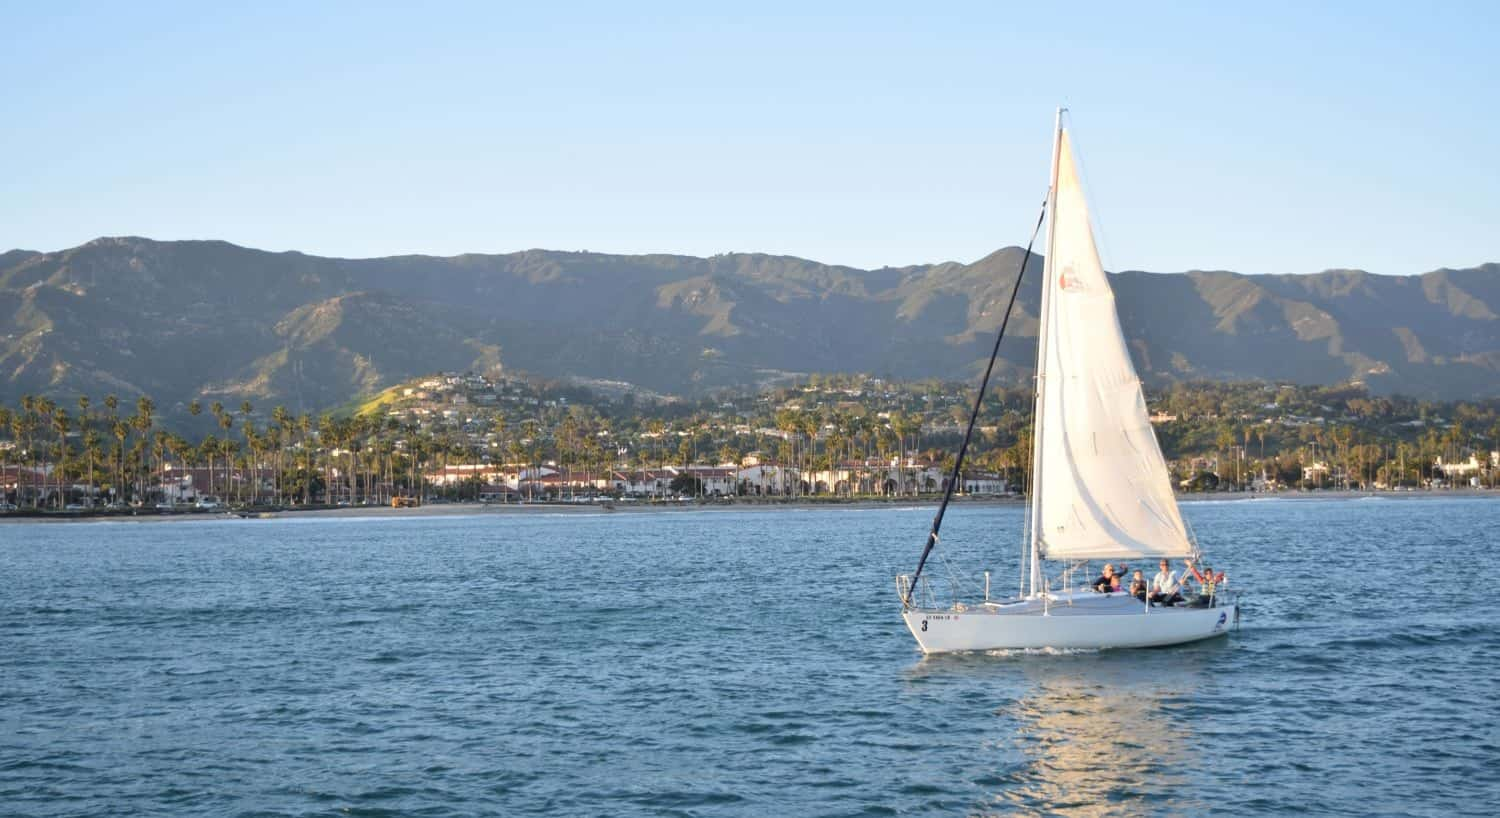 Sailboat sailing in the water with Santa Barbara and mountains in the background